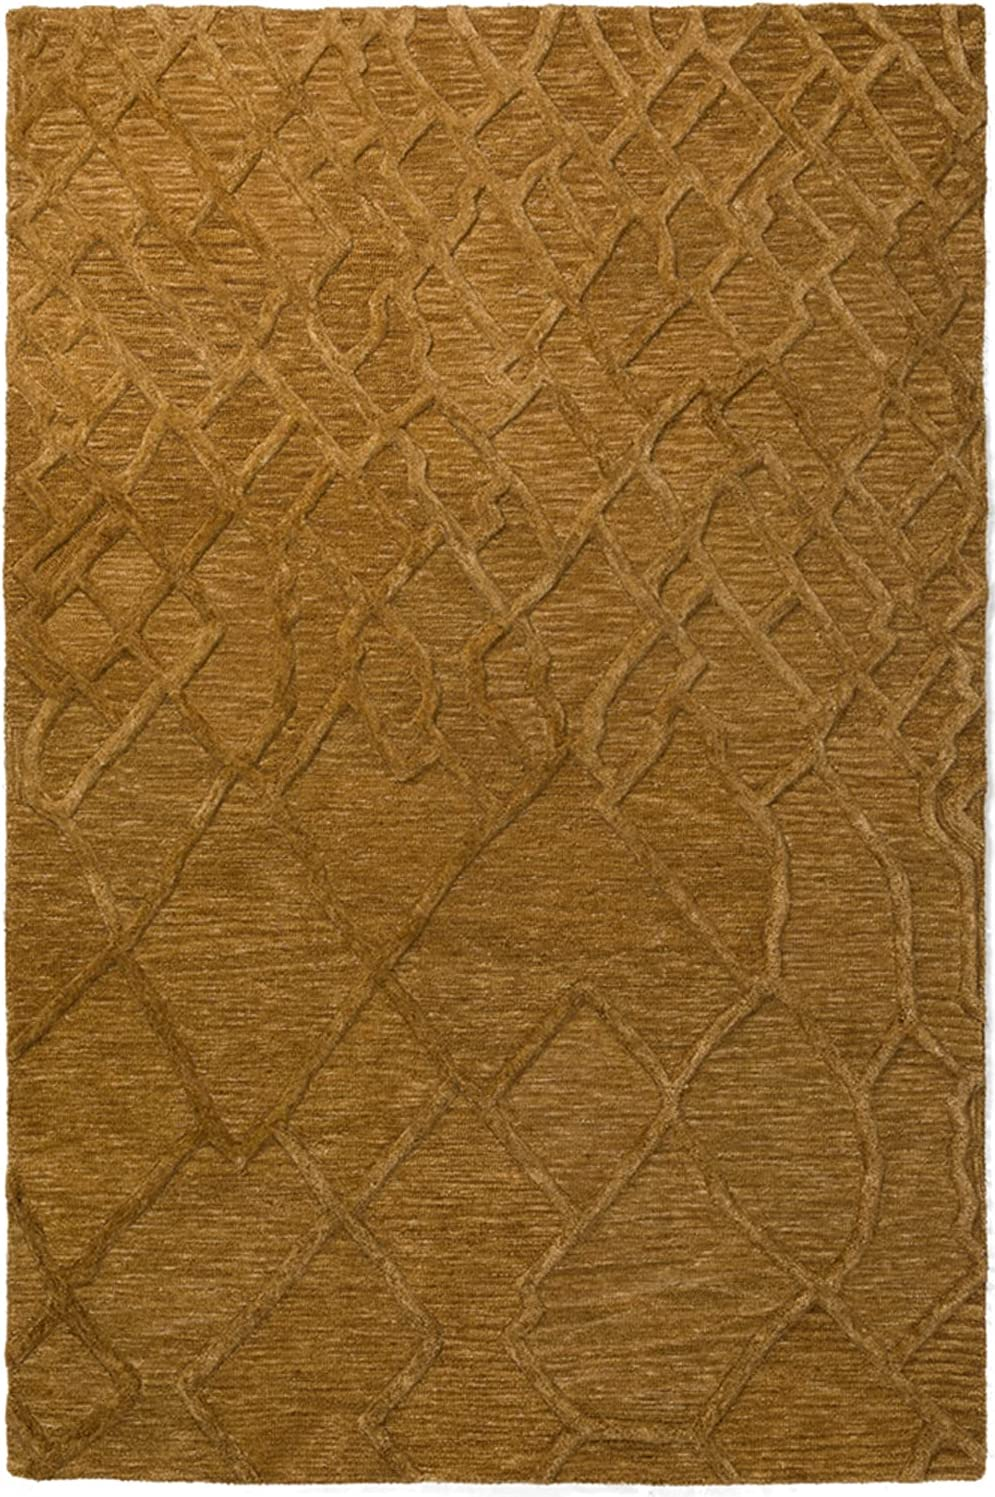 Dalyn Rug MJ1BR9X13 9 x Cheap mail order shopping 13 Rectangle MJ1 Rug44; Mojave Ranking TOP7 Area ft.